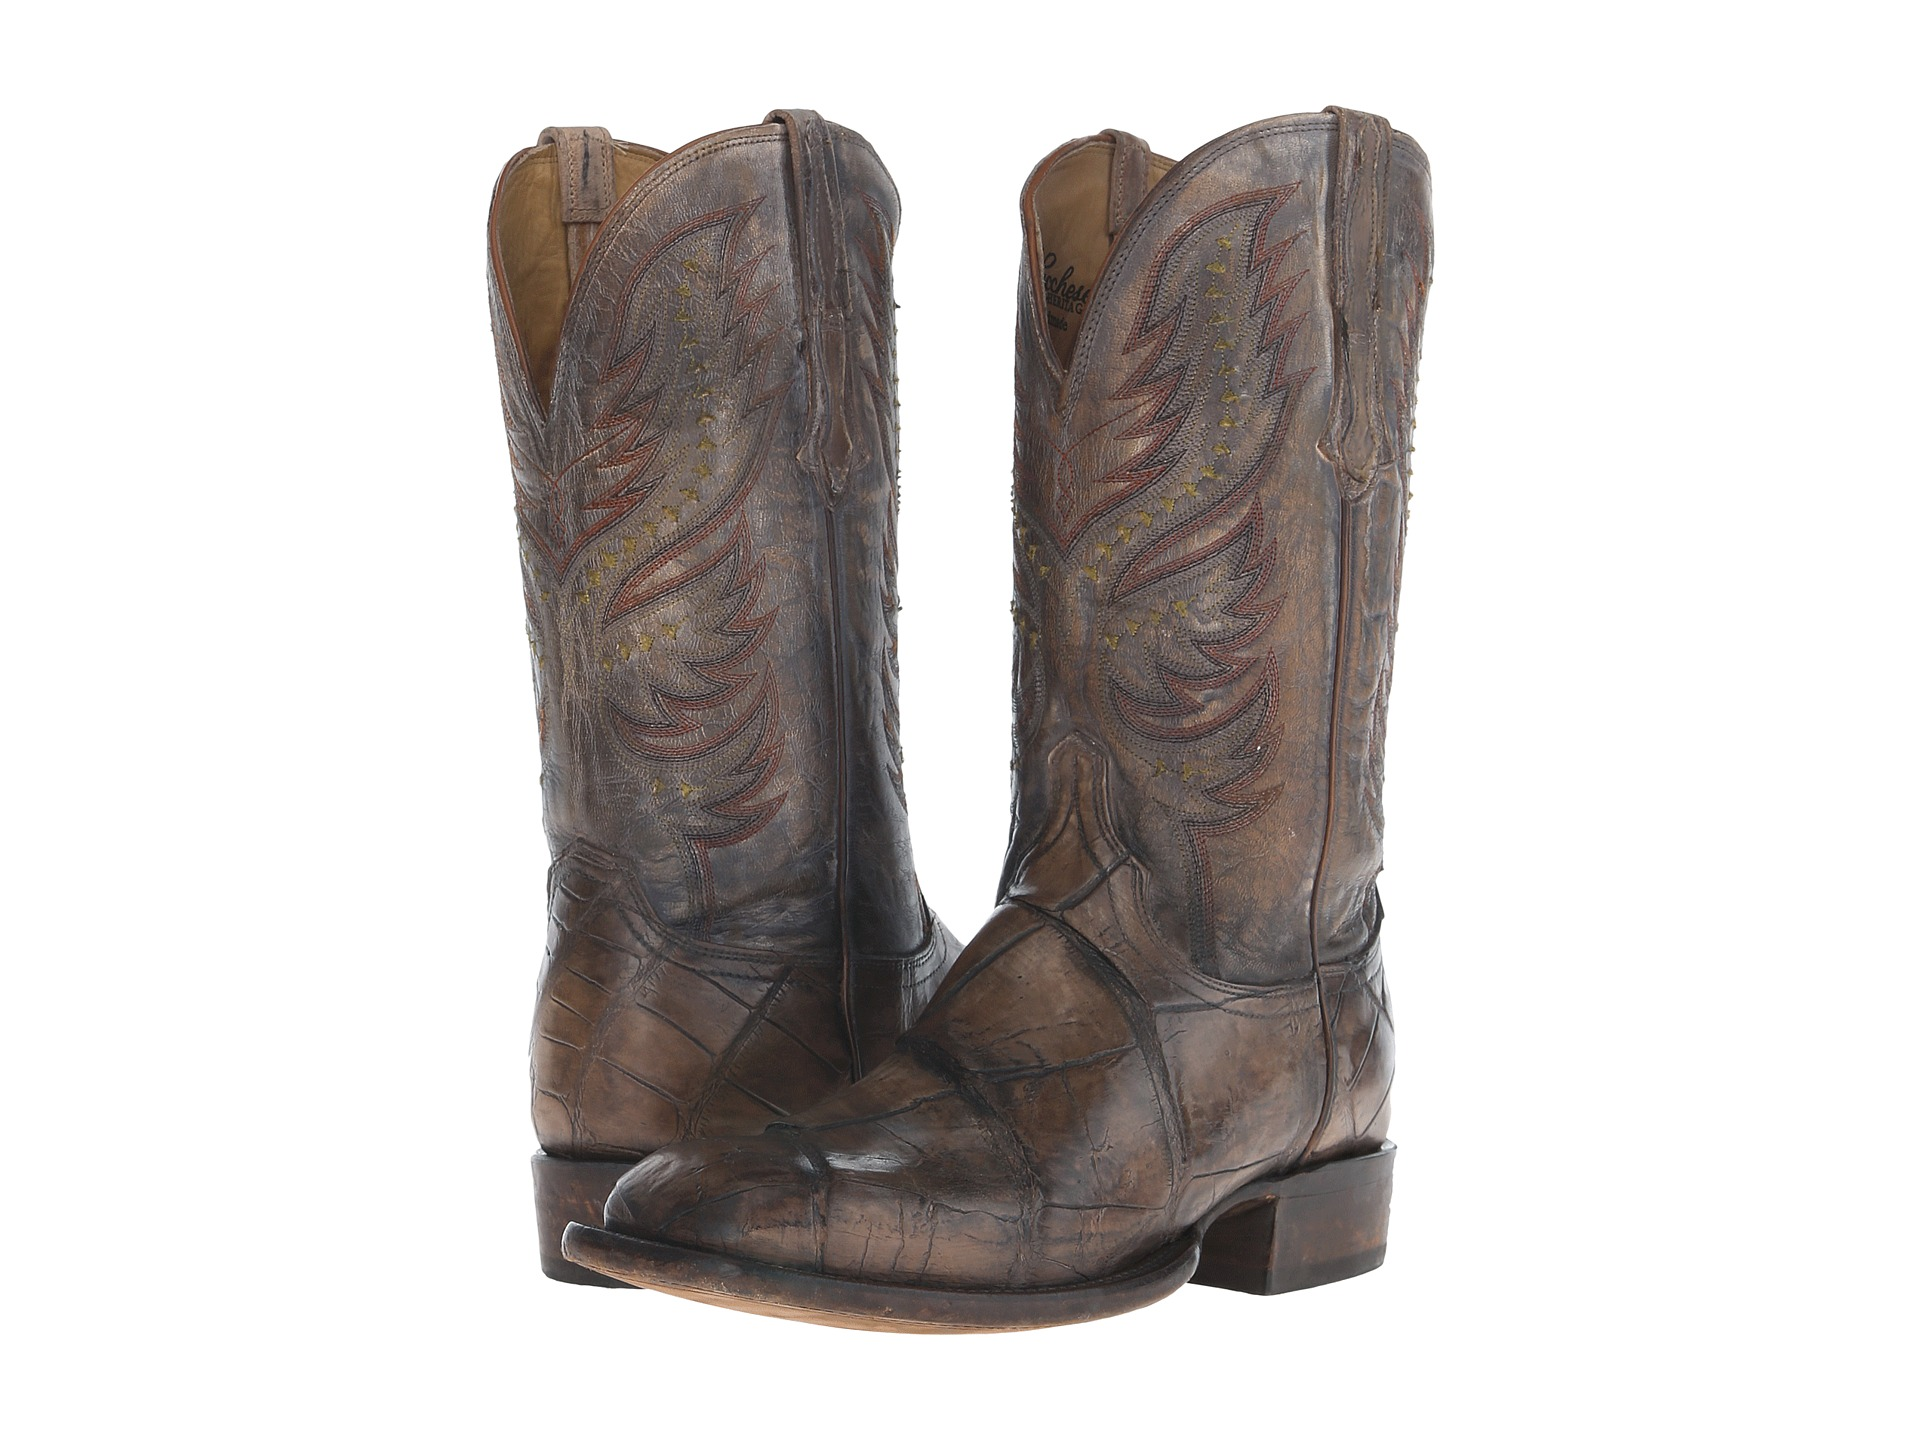 Boots, Cowboy Boots, Gray | Shipped Free at Zappos